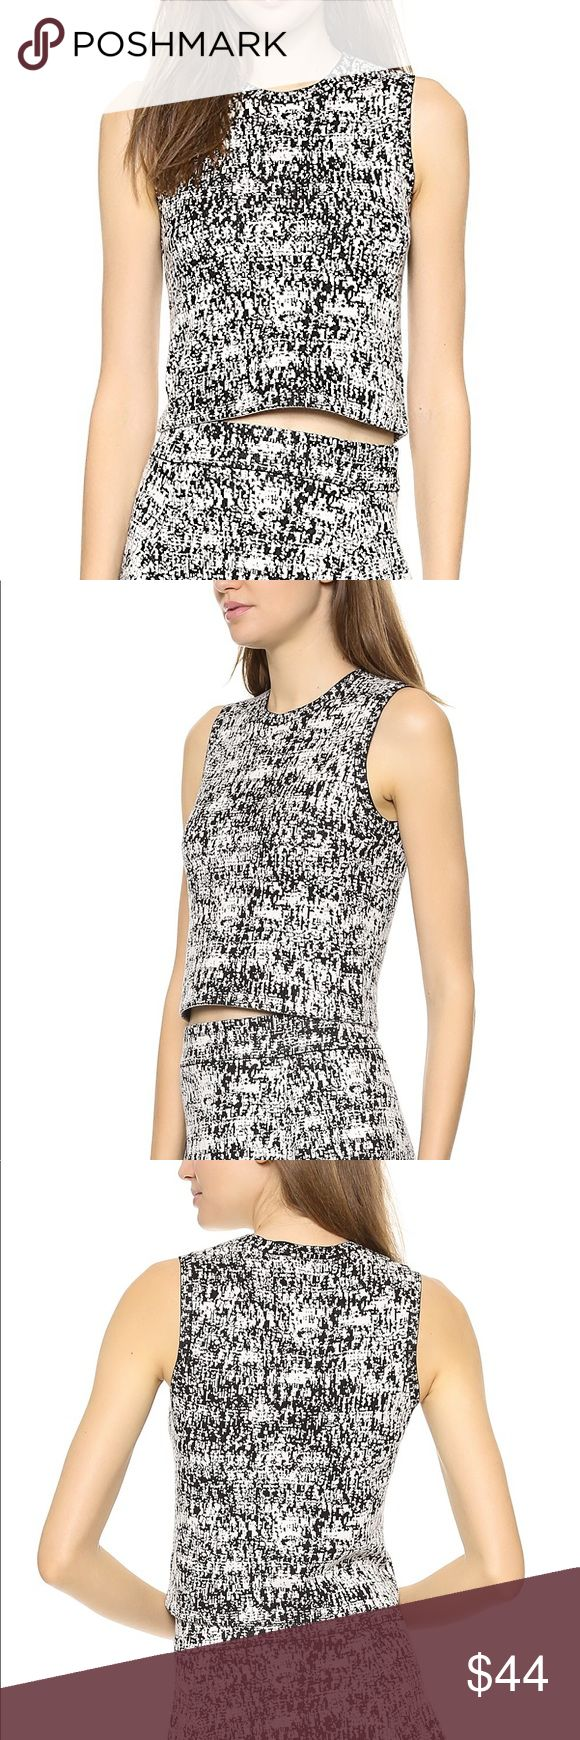 Theory Breeta Tweedscape Knit Tweed Pattern Top A cropped Theory top effects the look of hazy tweed with two-tone stitches. Banded crew neckline. Sleeveless. Fabric: Double-knit. 53% cotton/41% viscose/5% polyester/1% spandex. Dry clean. Measurements Length: 18in / 46cm, from shoulder Measurements from size S - worn only once - No flaws / perfect condition - Can fit XS as well - PRICE IS FIRM - NO TRADES Theory Tops Tank Tops